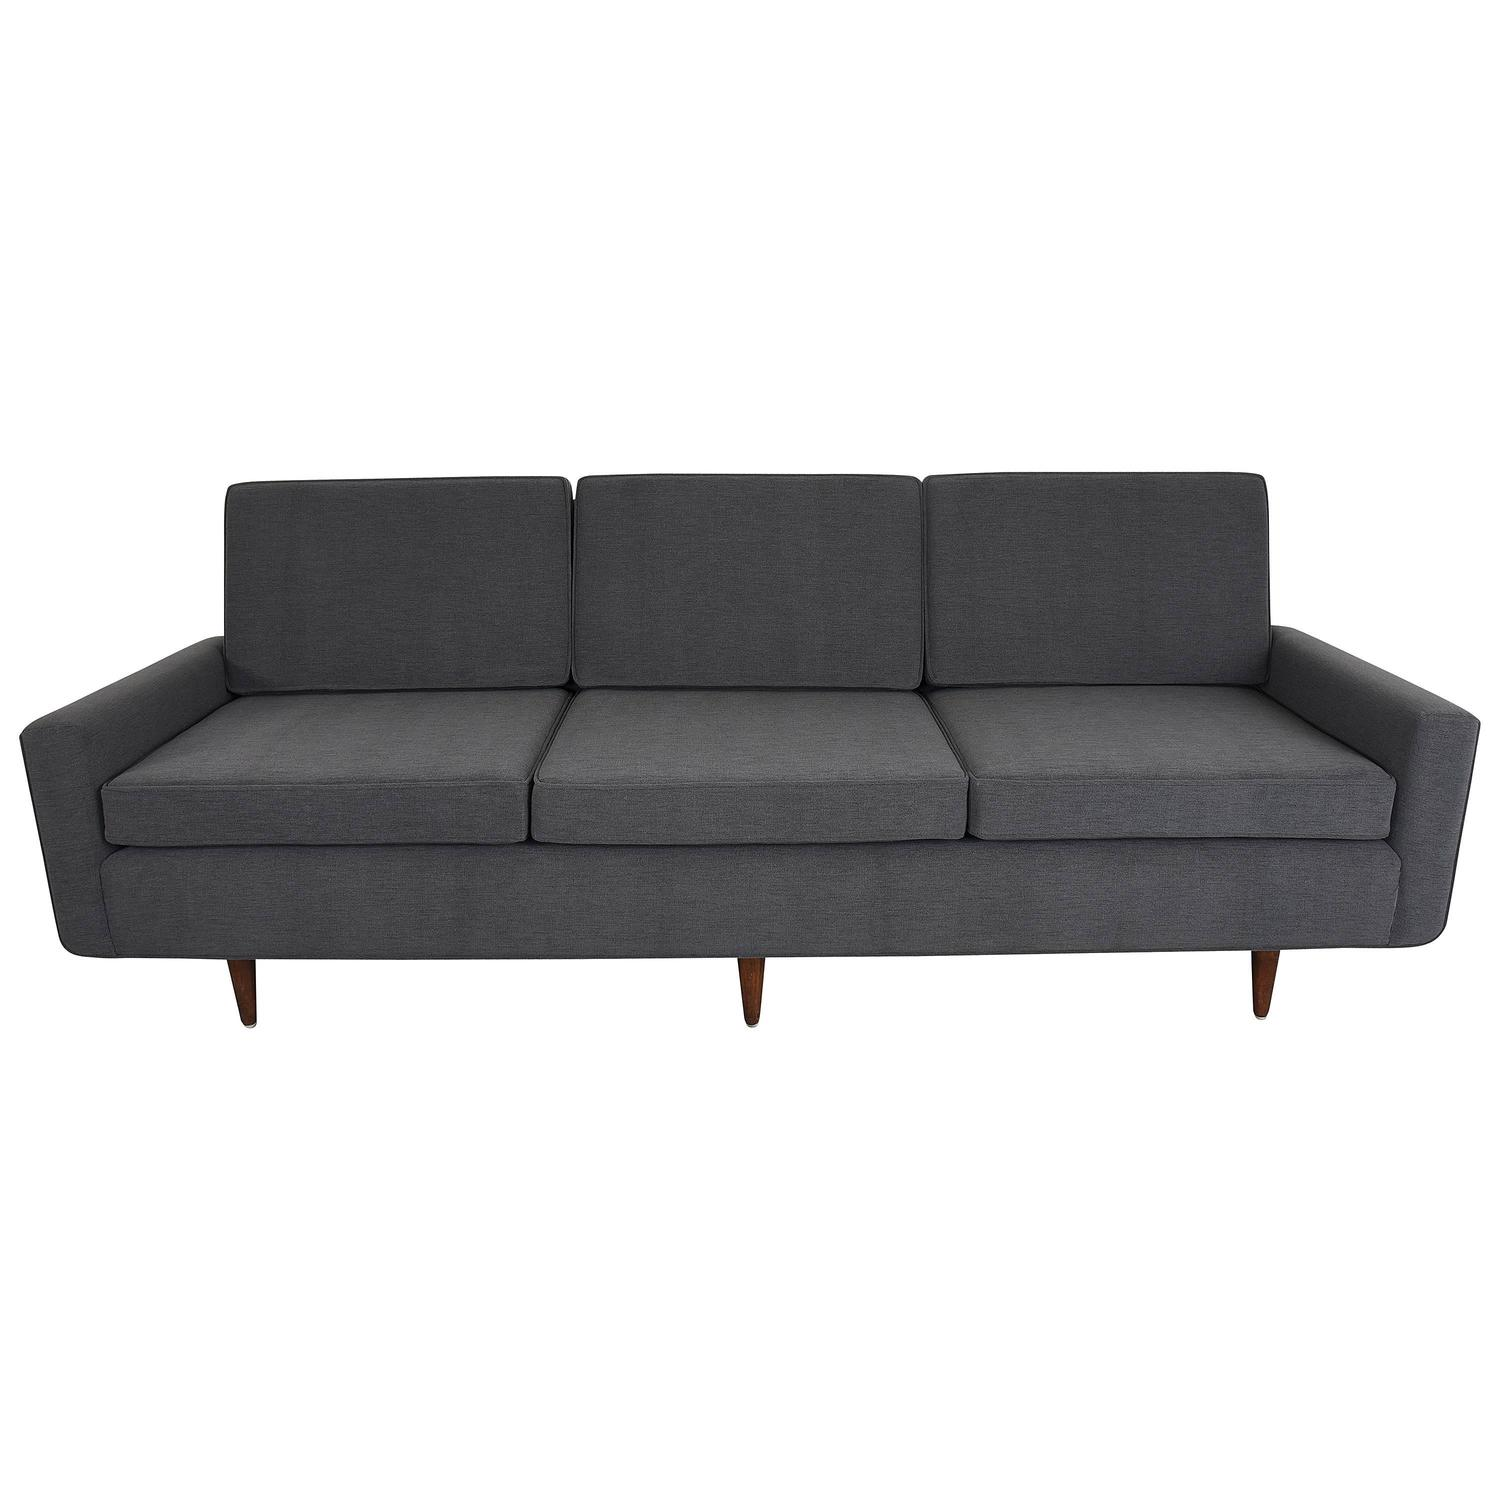 florence knoll sofa three seat sofa model 26 pair available for sale at 1stdibs. Black Bedroom Furniture Sets. Home Design Ideas